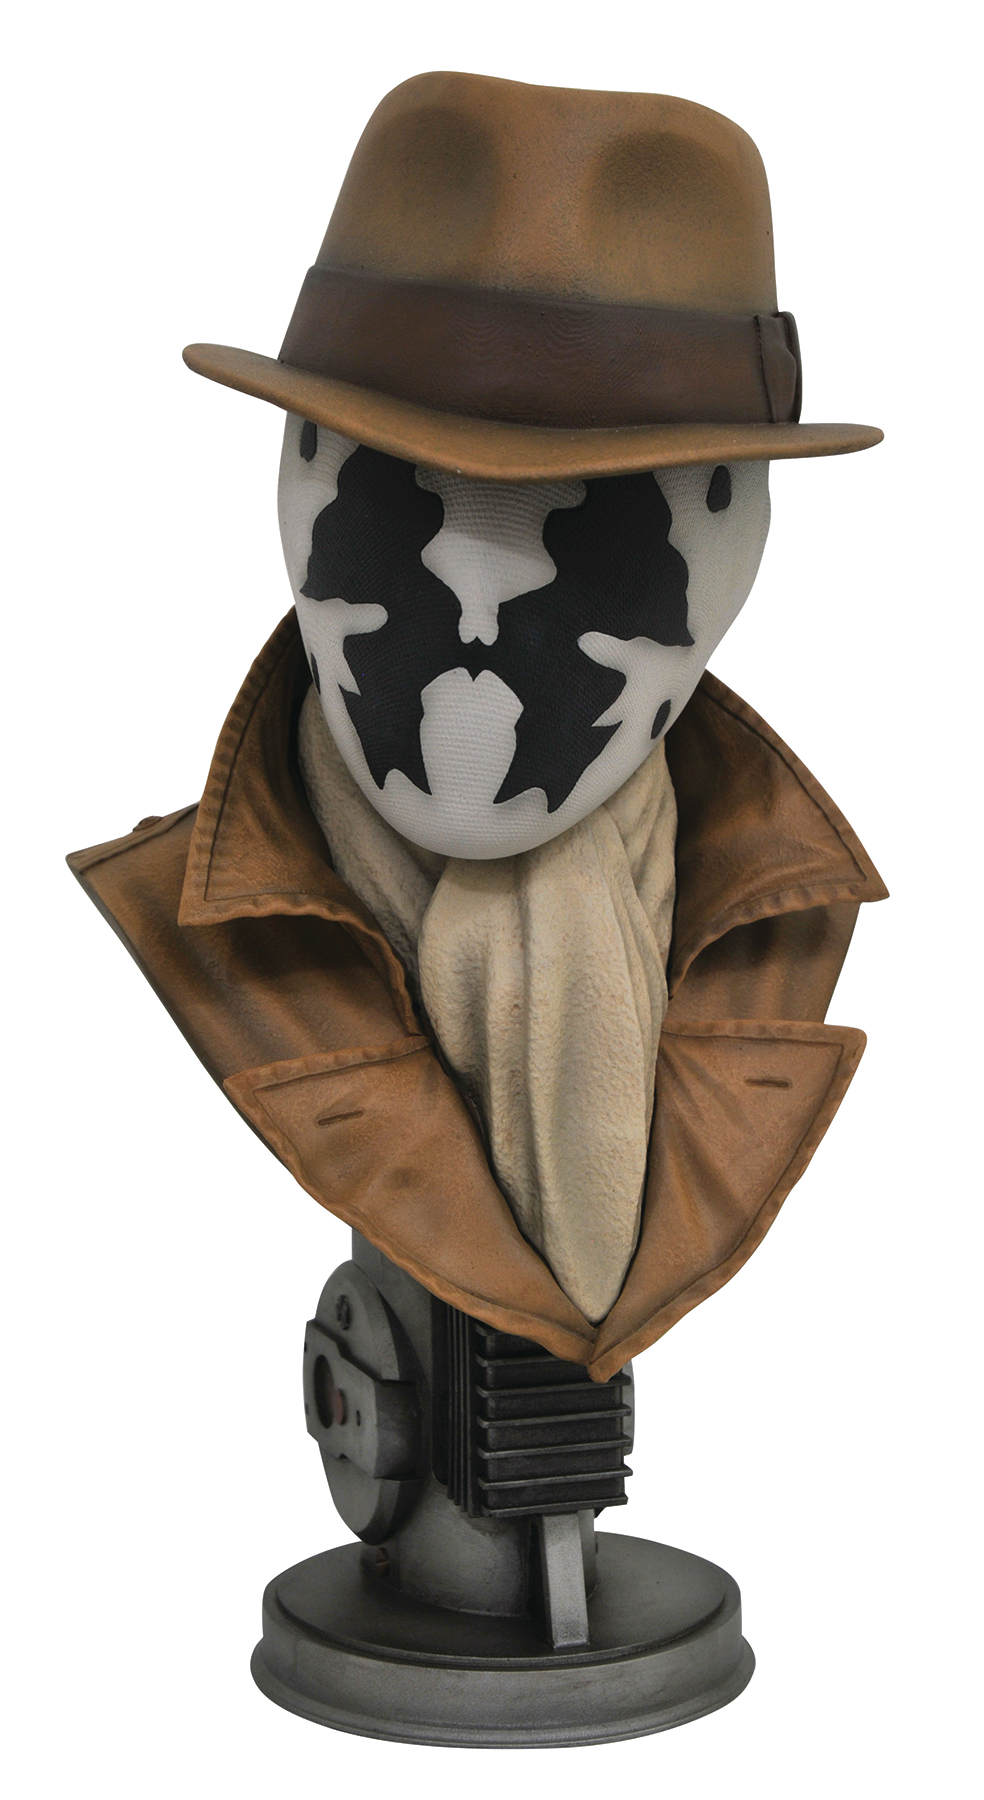 LEGENDS IN 3D MOVIE WATCHMEN RORSCHACH 1/2 SCALE BUST (O/A)